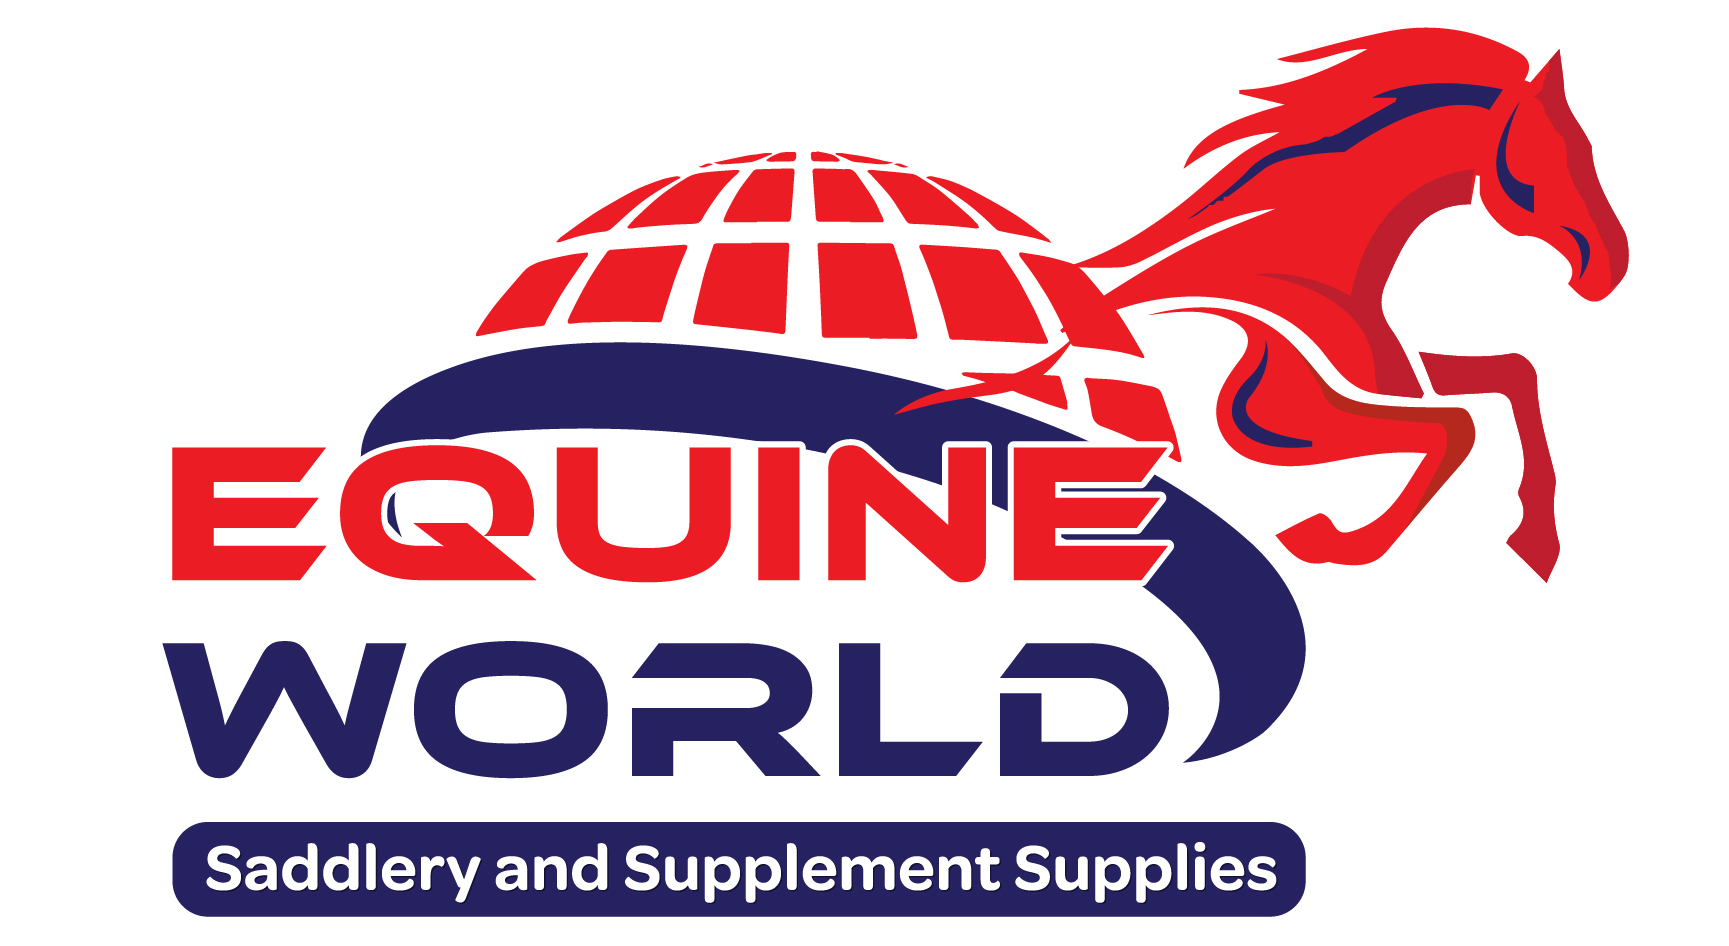 Equine saddlery and supplement services